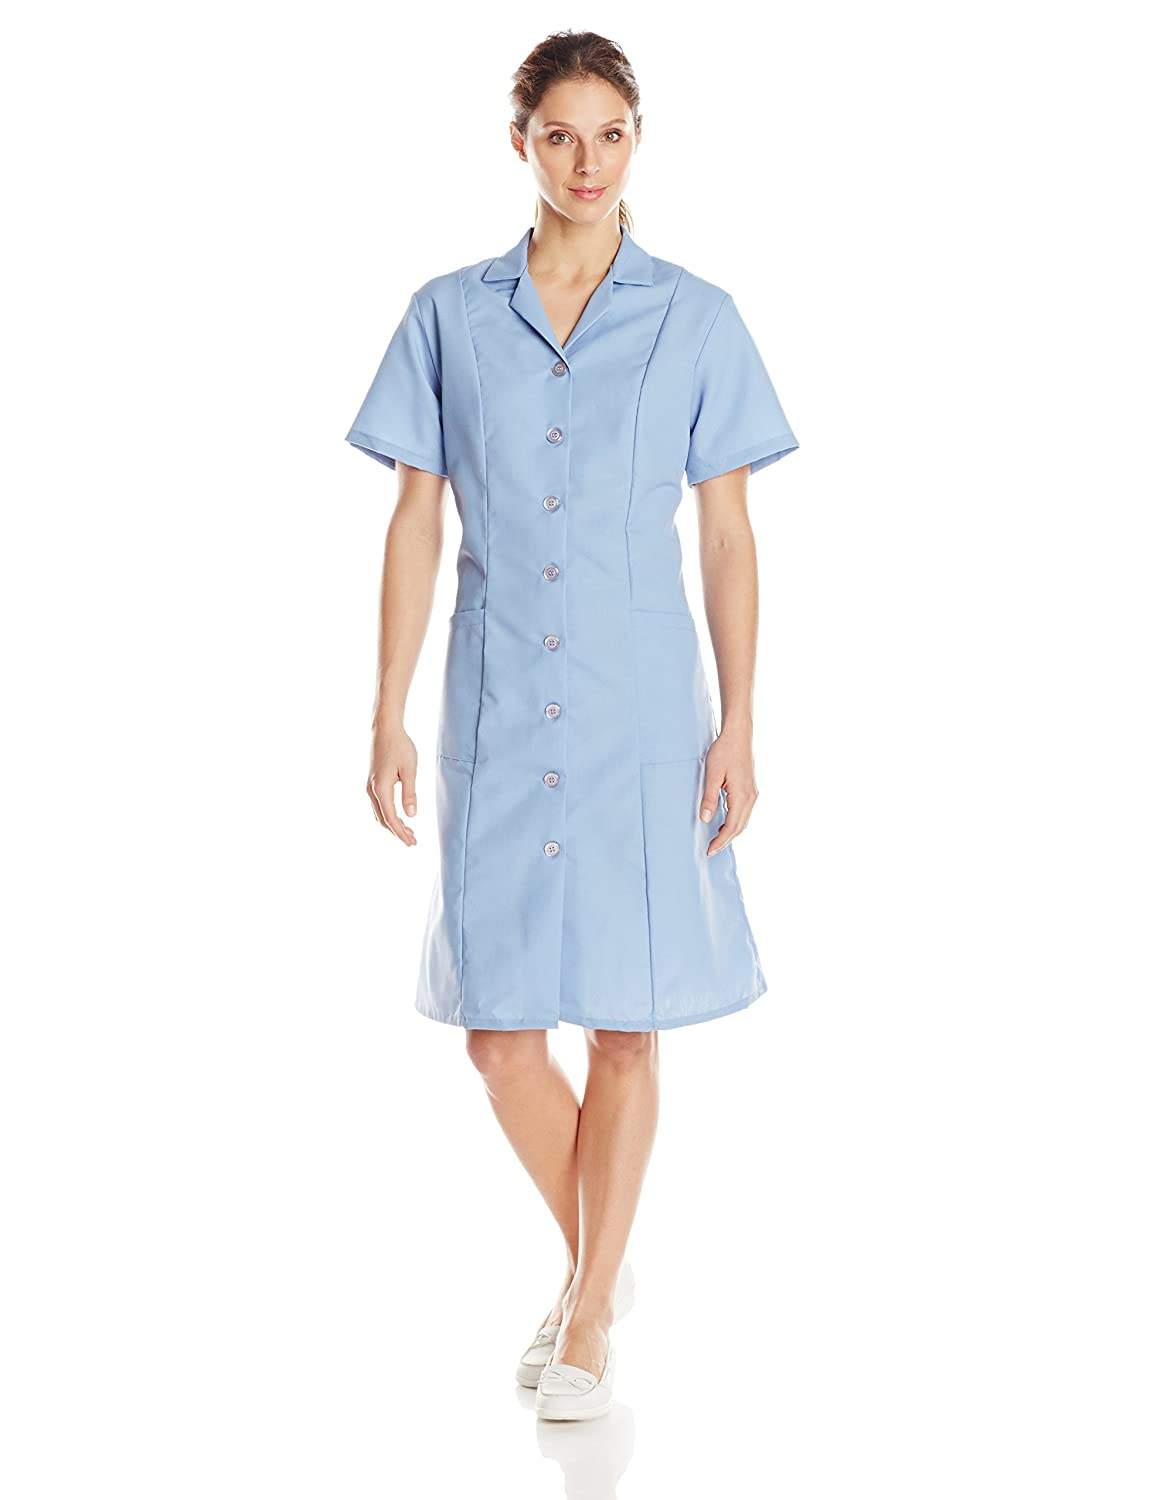 Red Kap Women's Short Sleeve Work Dress Red Kap Women's Uniforms